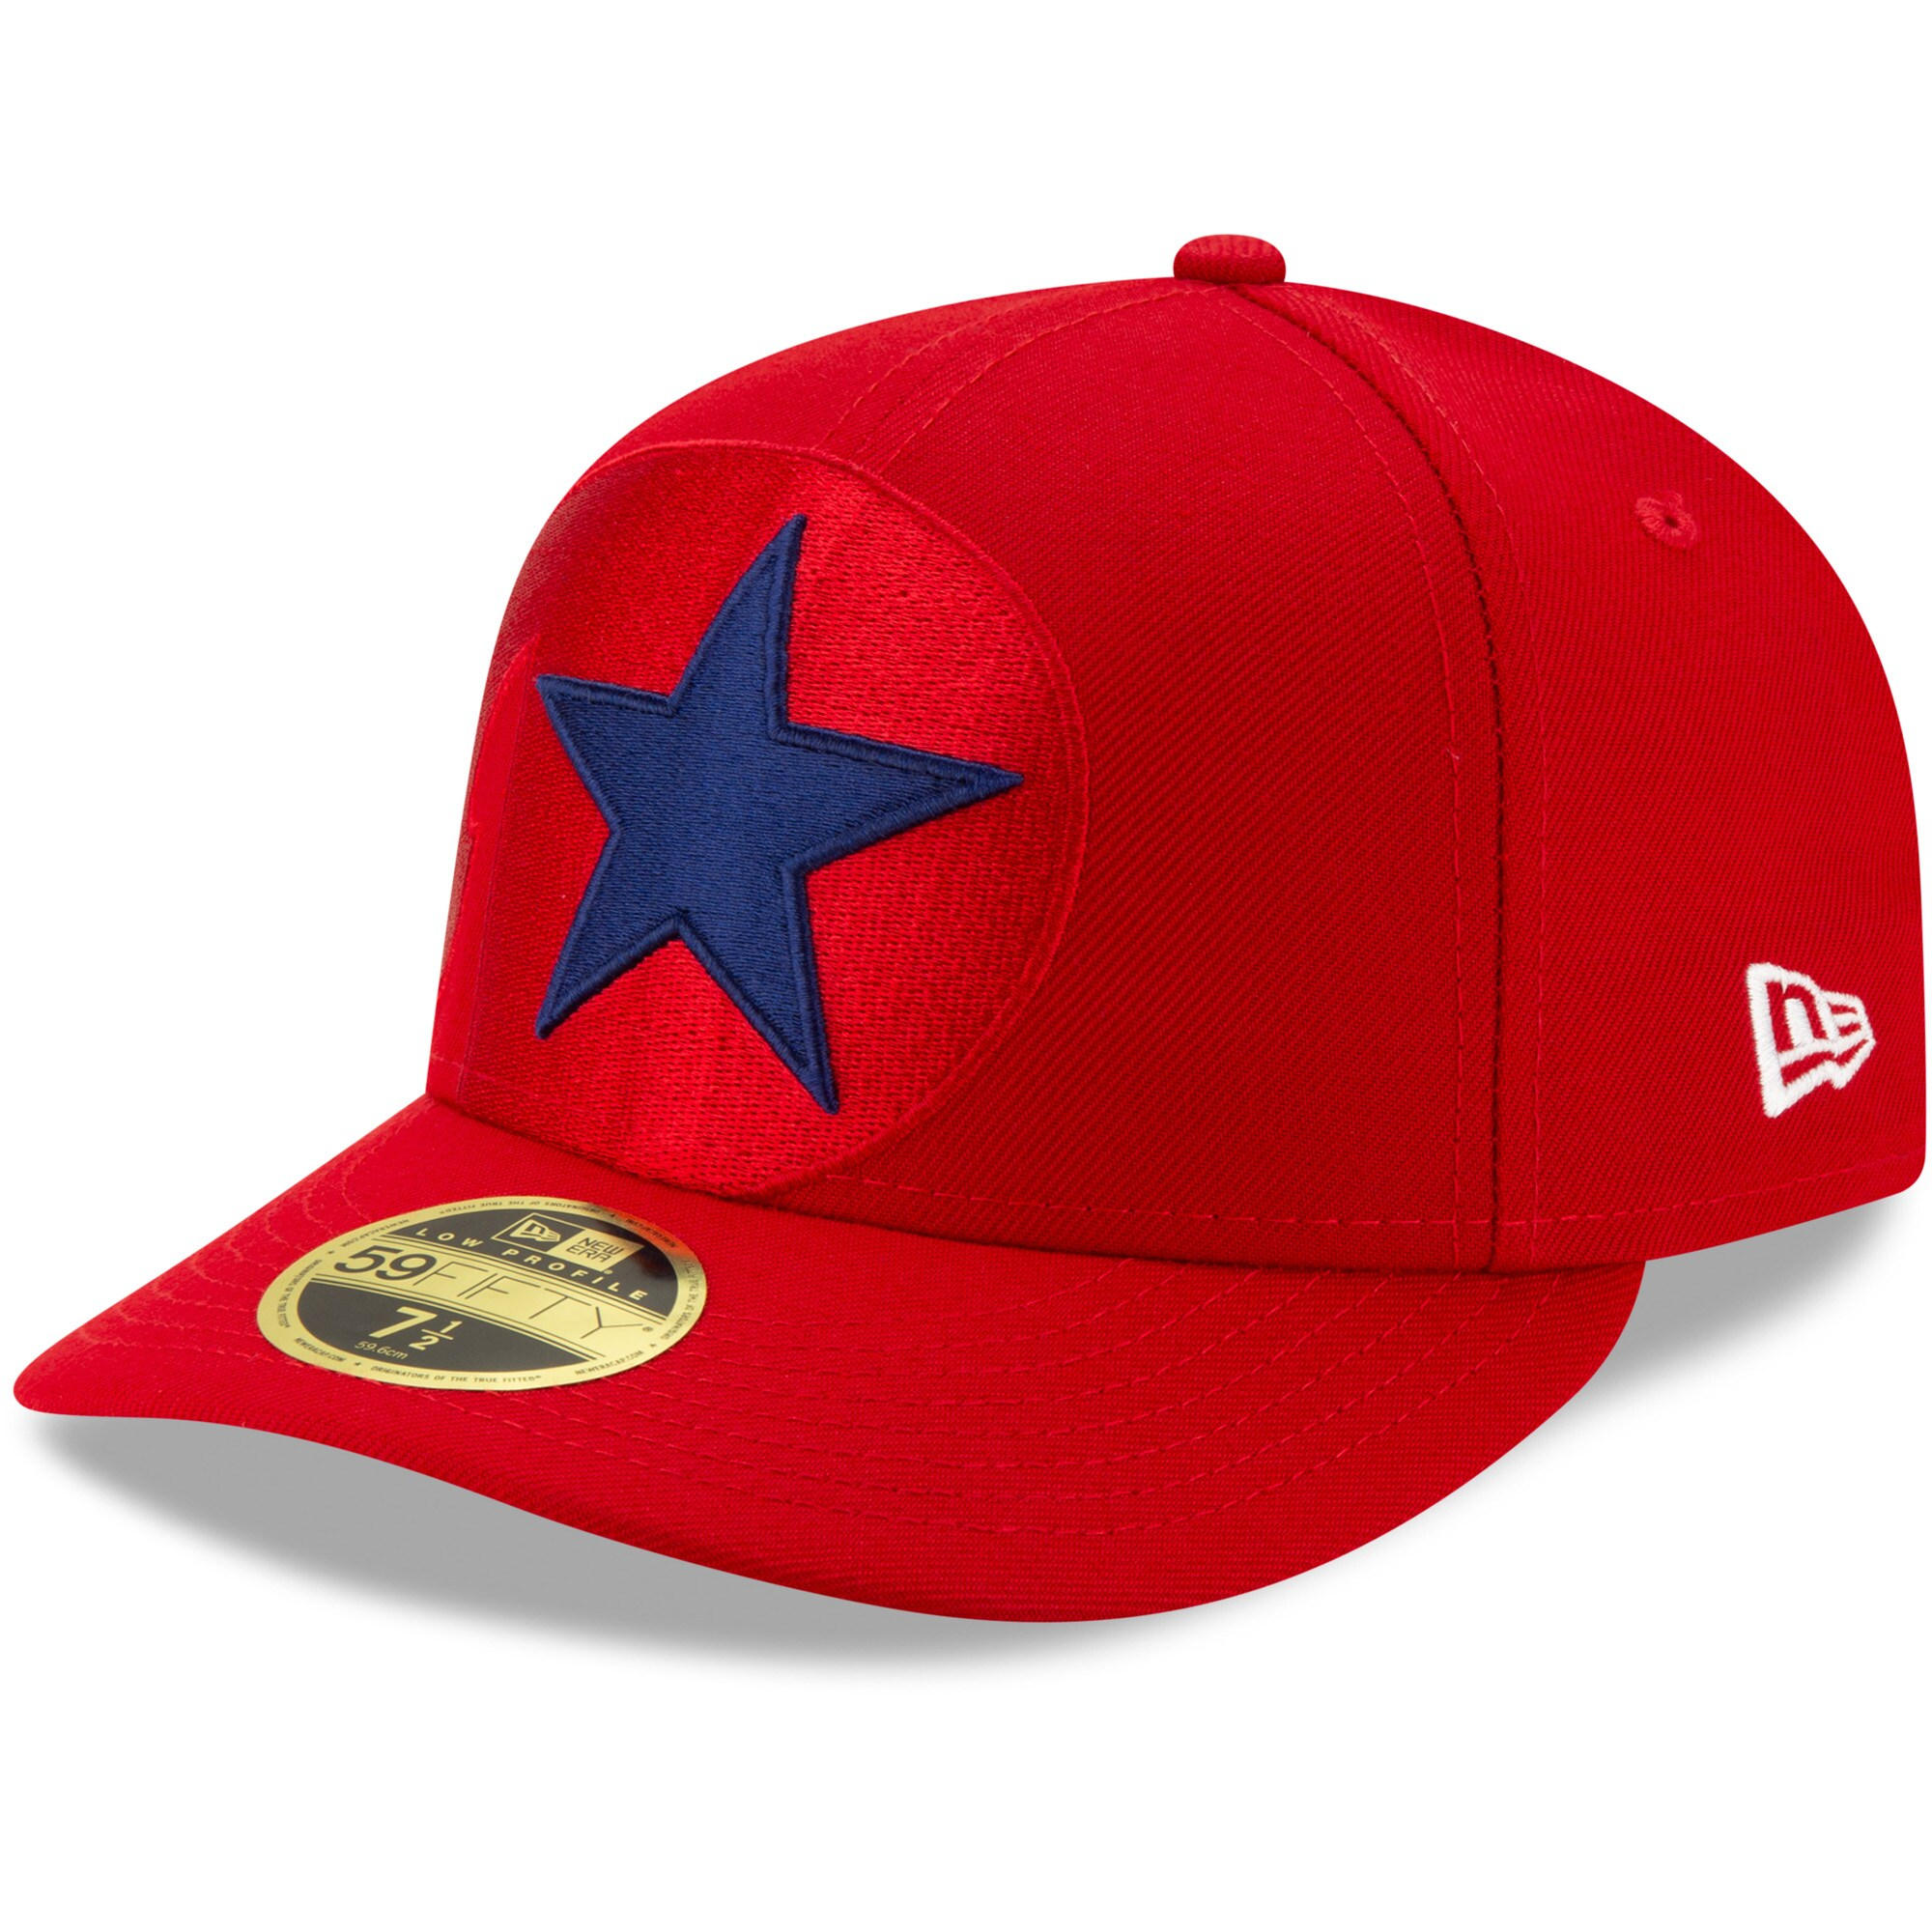 Philadelphia Phillies New Era Logo Elements Low Profile 59FIFTY Fitted Hat - Red